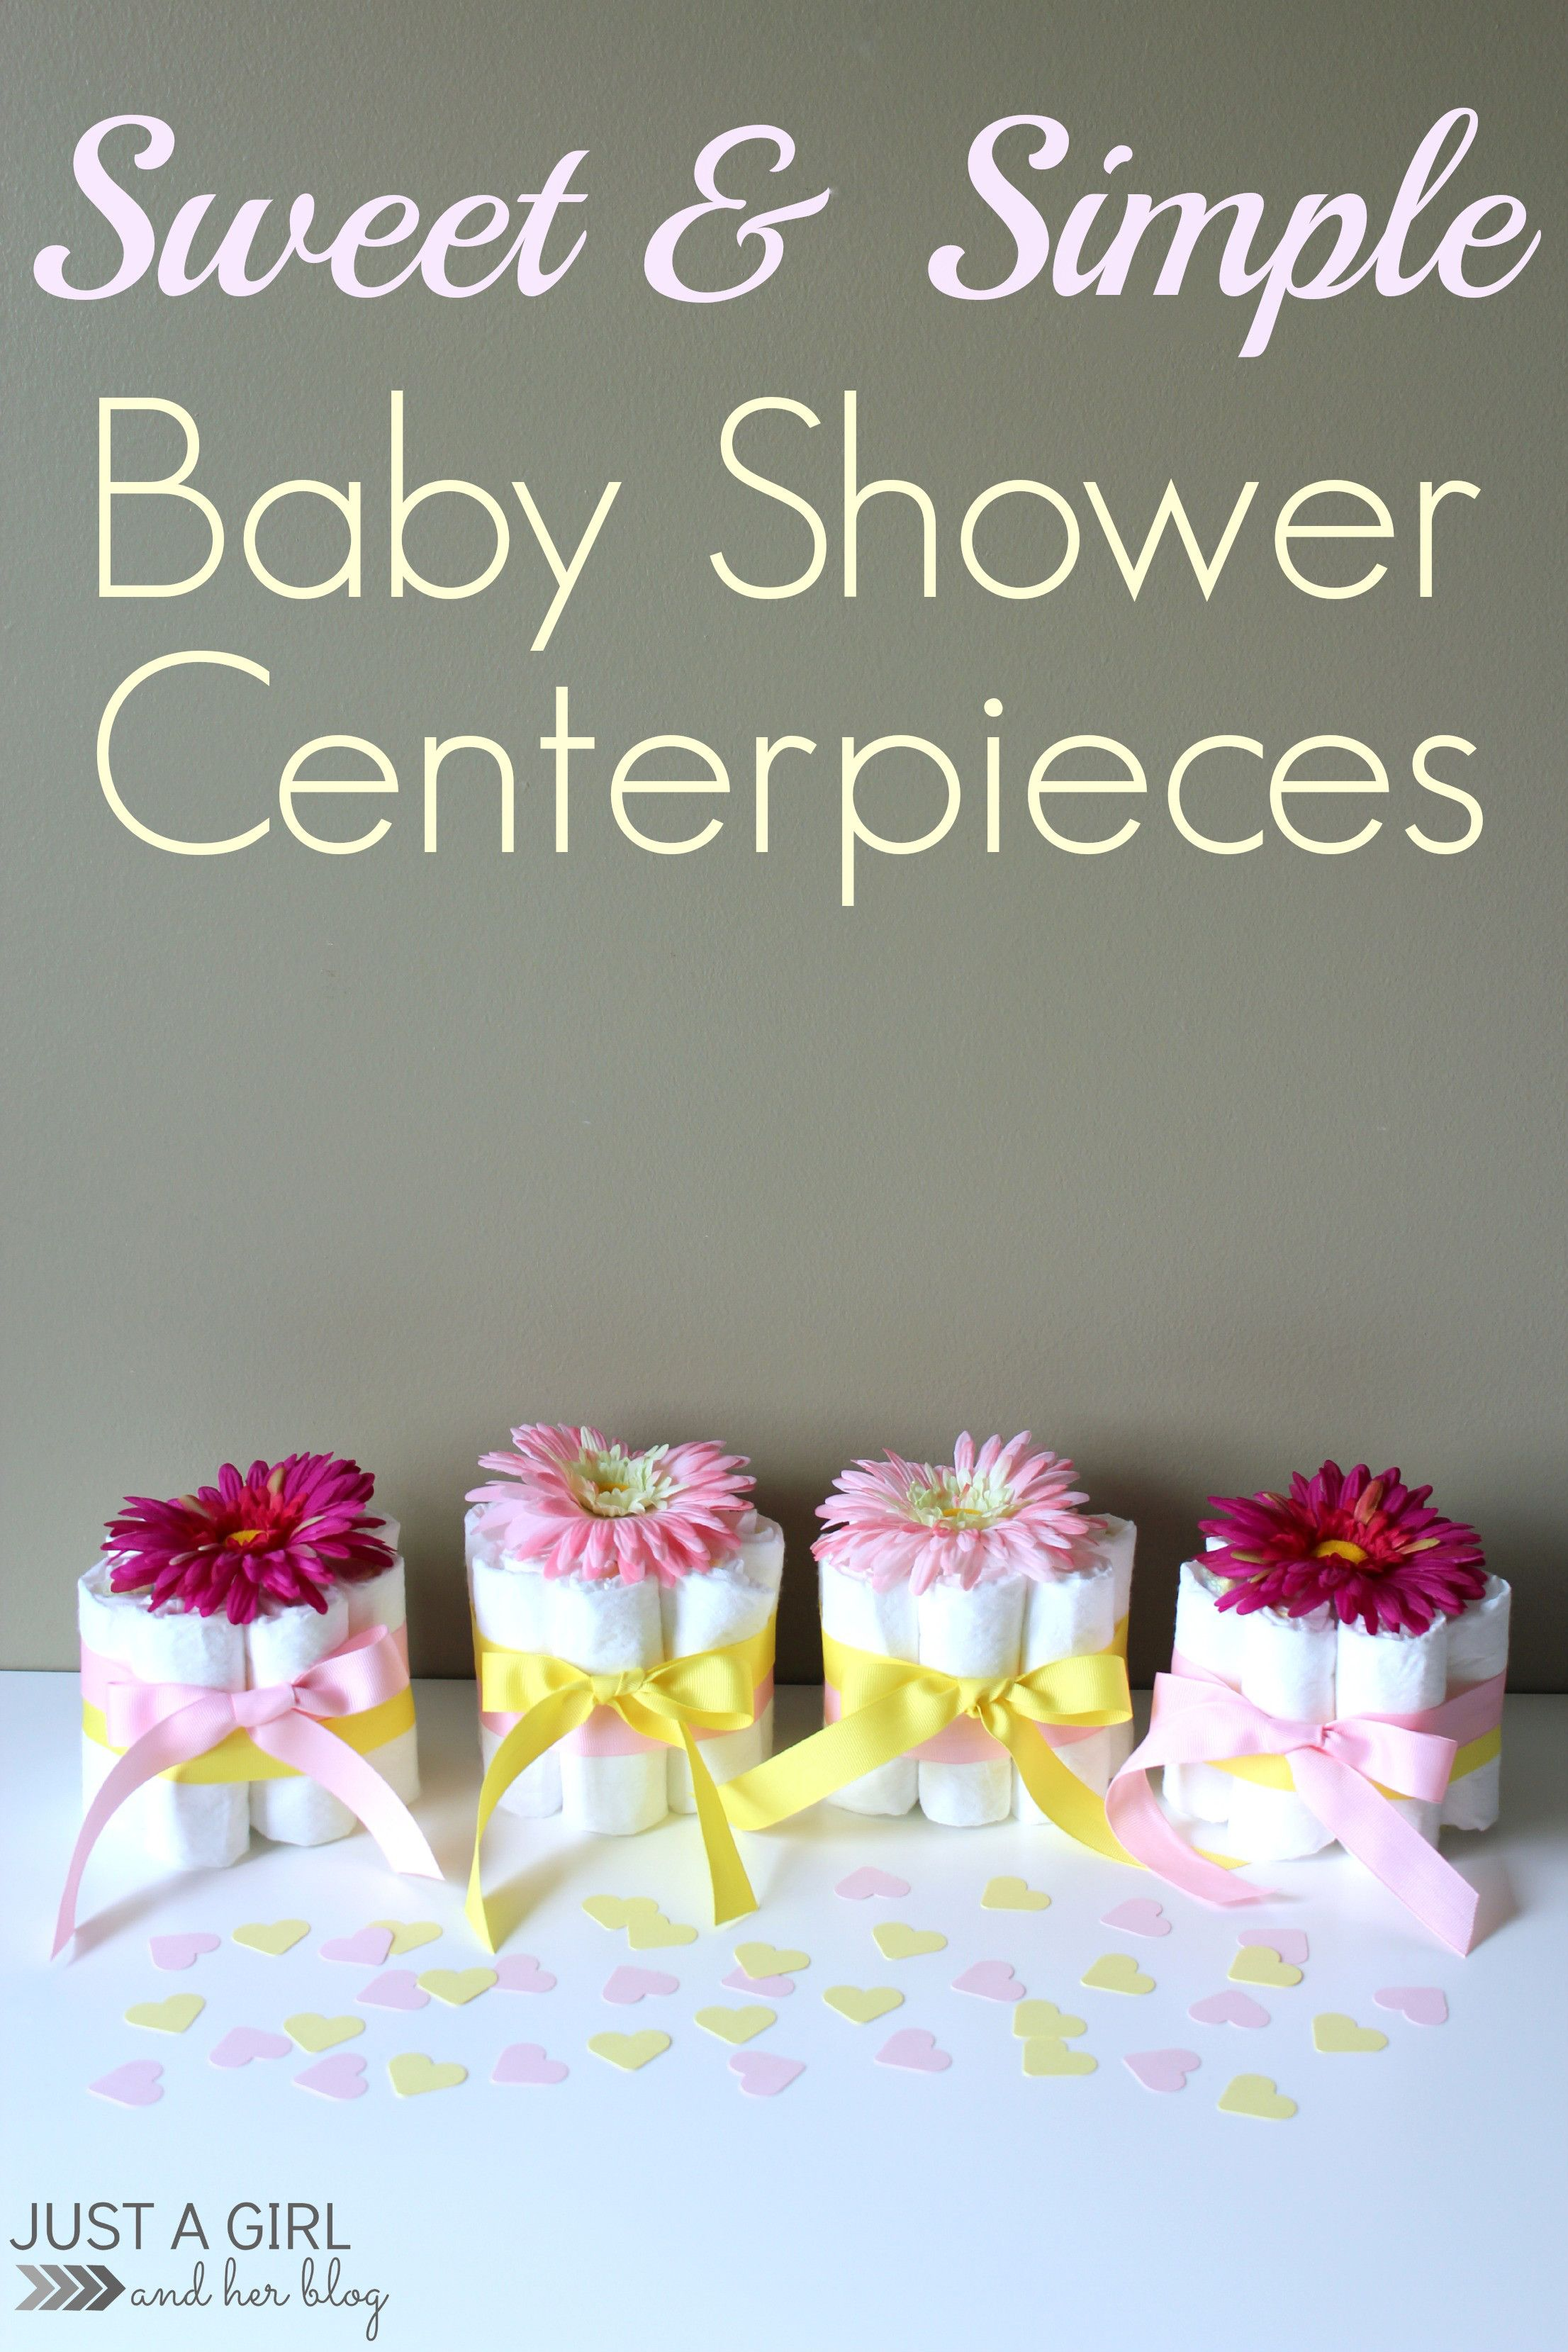 Sweet and Simple Baby Shower Centerpieces